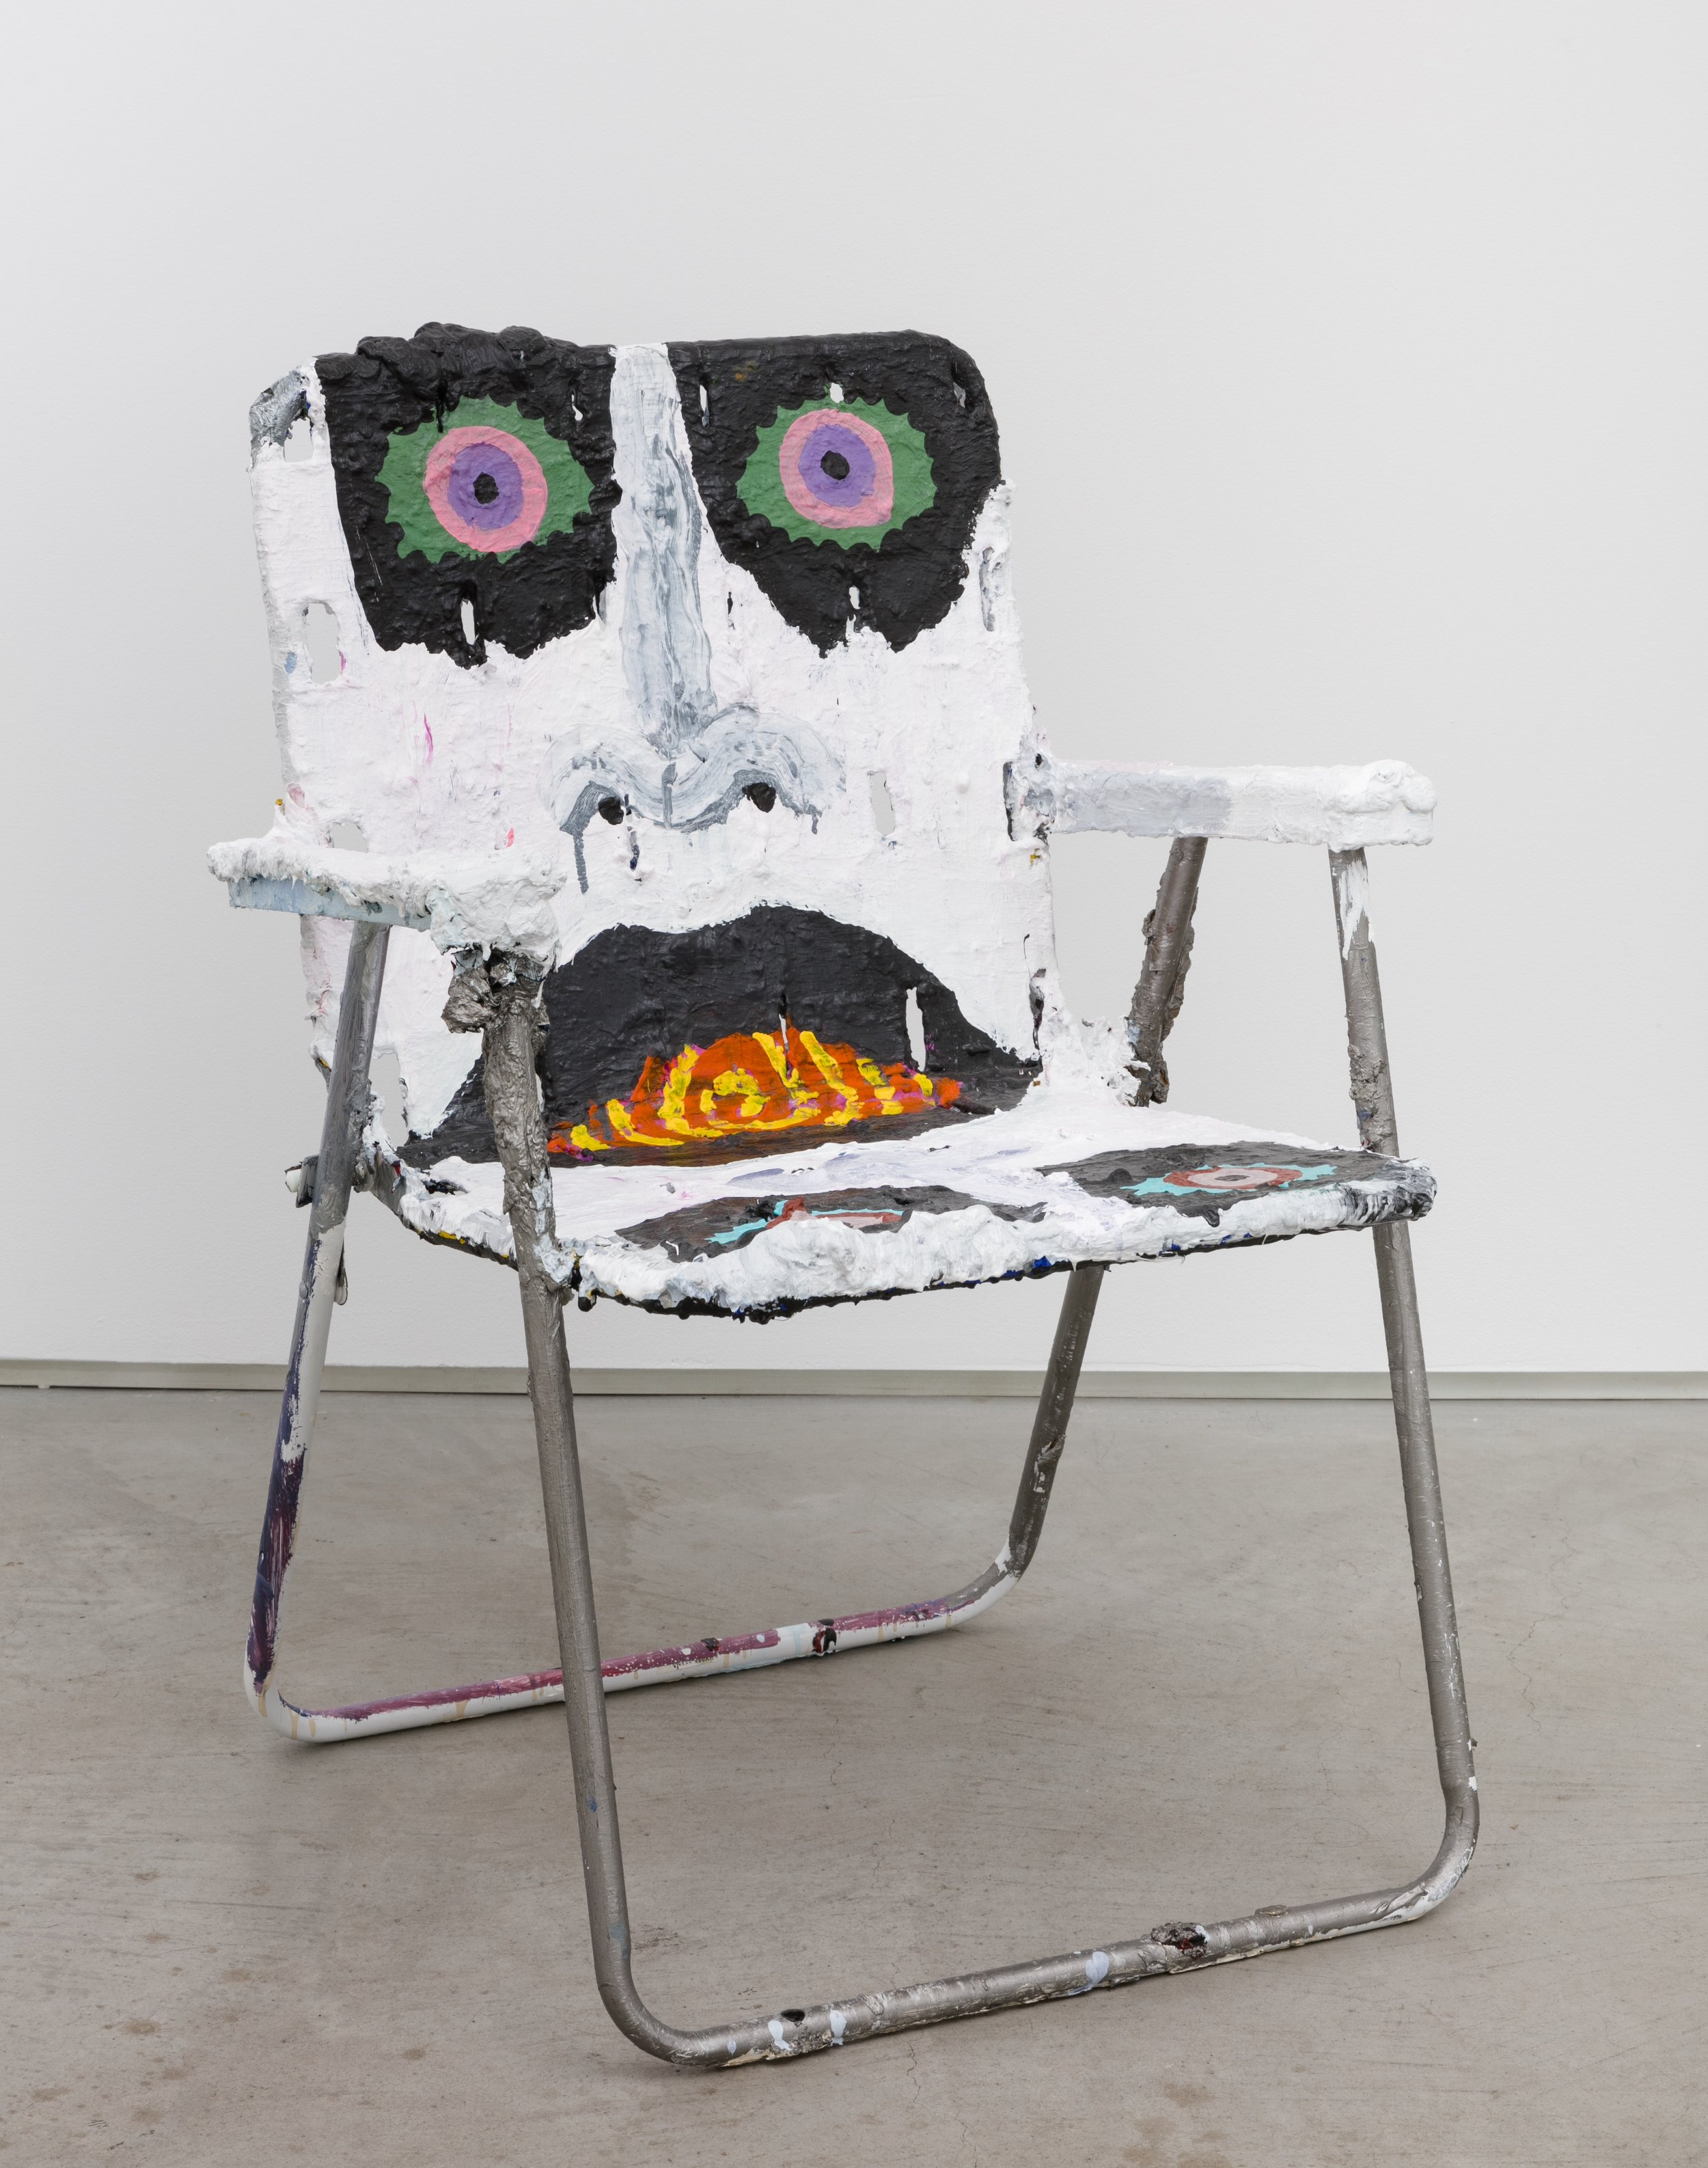 Phillip Hinge   Learn the Key to Clairvoyance   30 inches x 24 inches x 20 inches  Acrylic and oil enamel on folding chair  2015